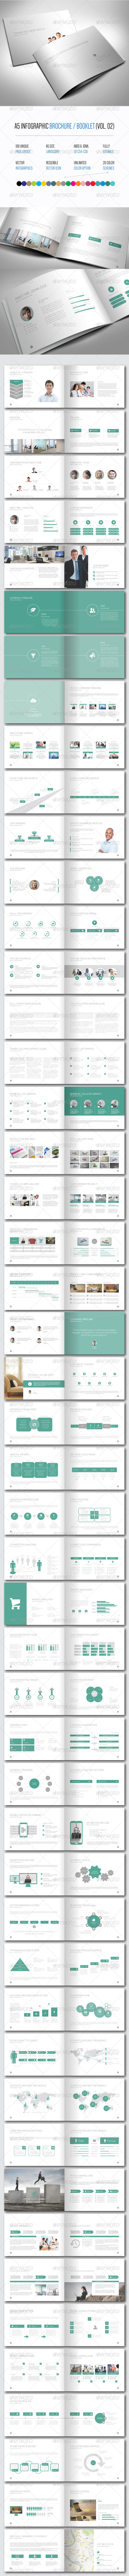 GraphicRiver Infographic Brochure Booklet Vol 02 8373785